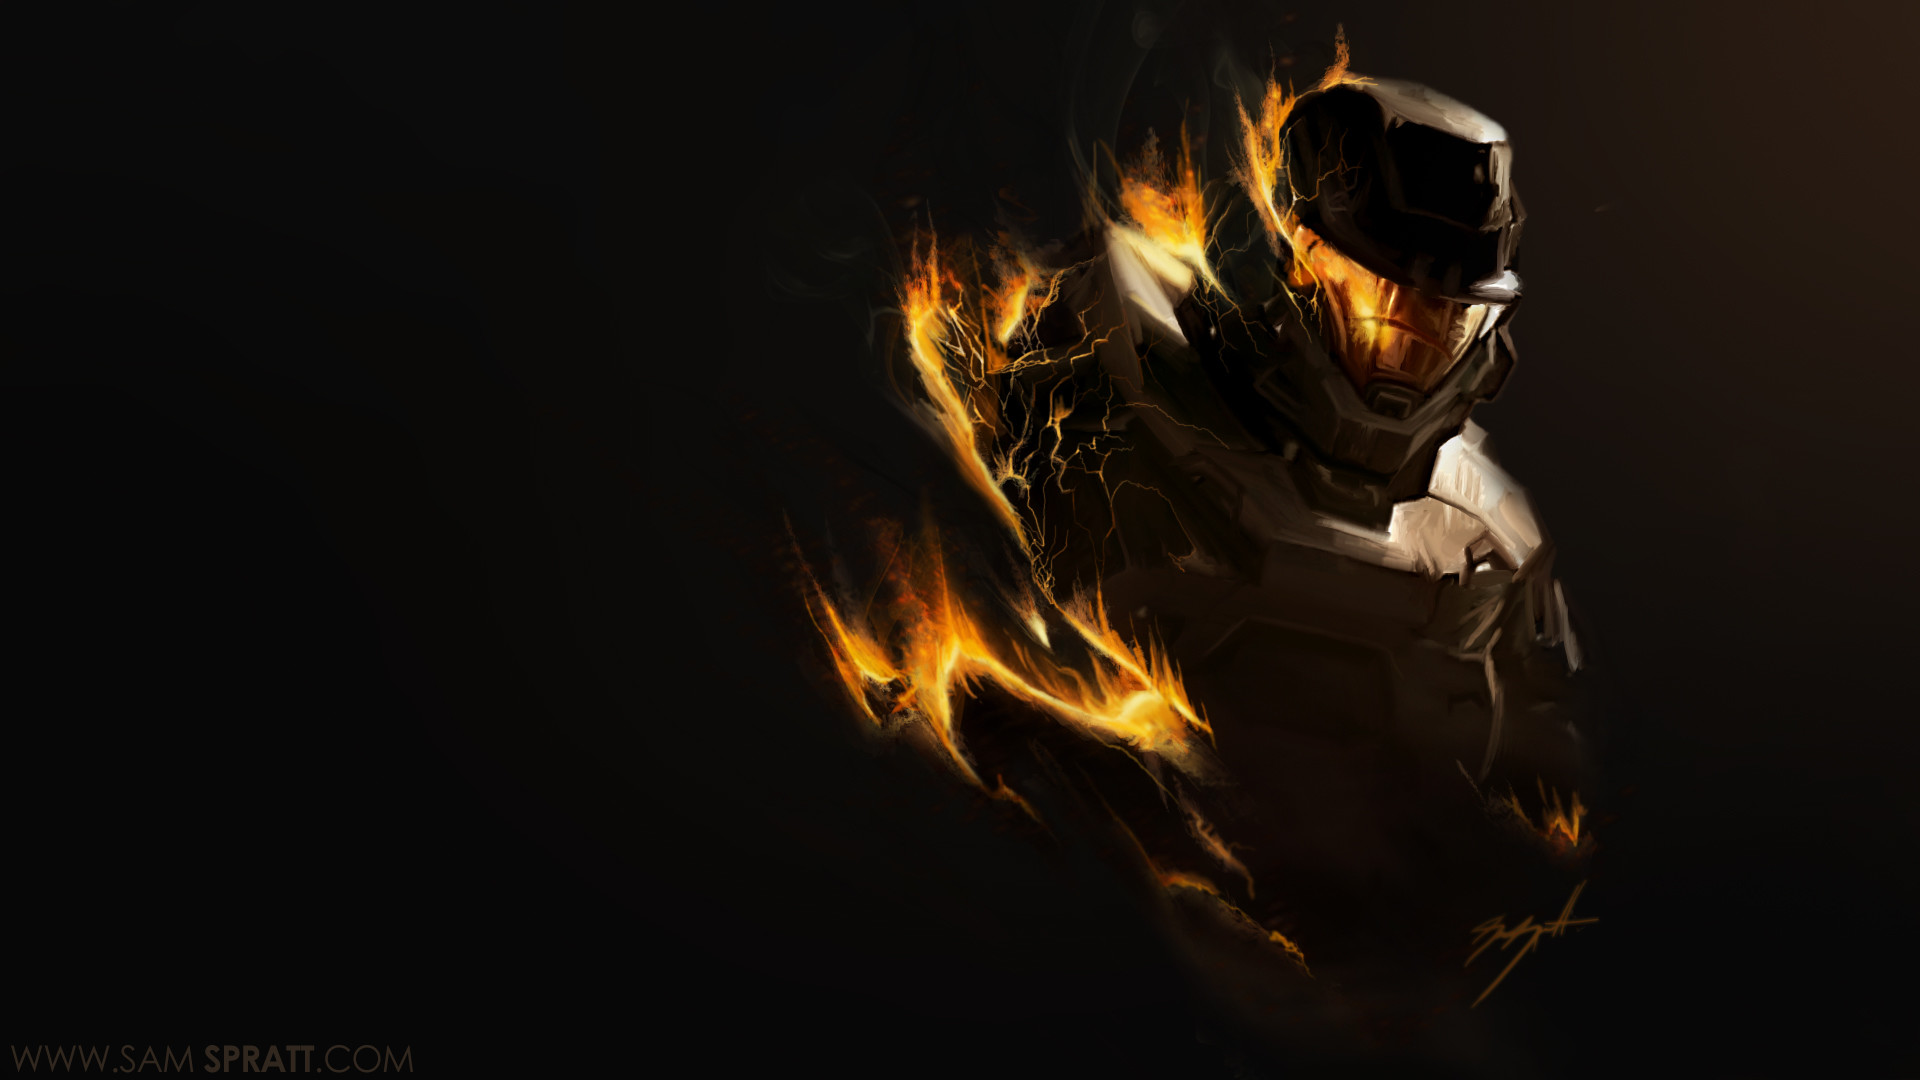 1920x1080 Image - Halo-reach-wallpaper-remember-master-chief-black.jpg | Bungiepedia  | FANDOM powered by Wikia